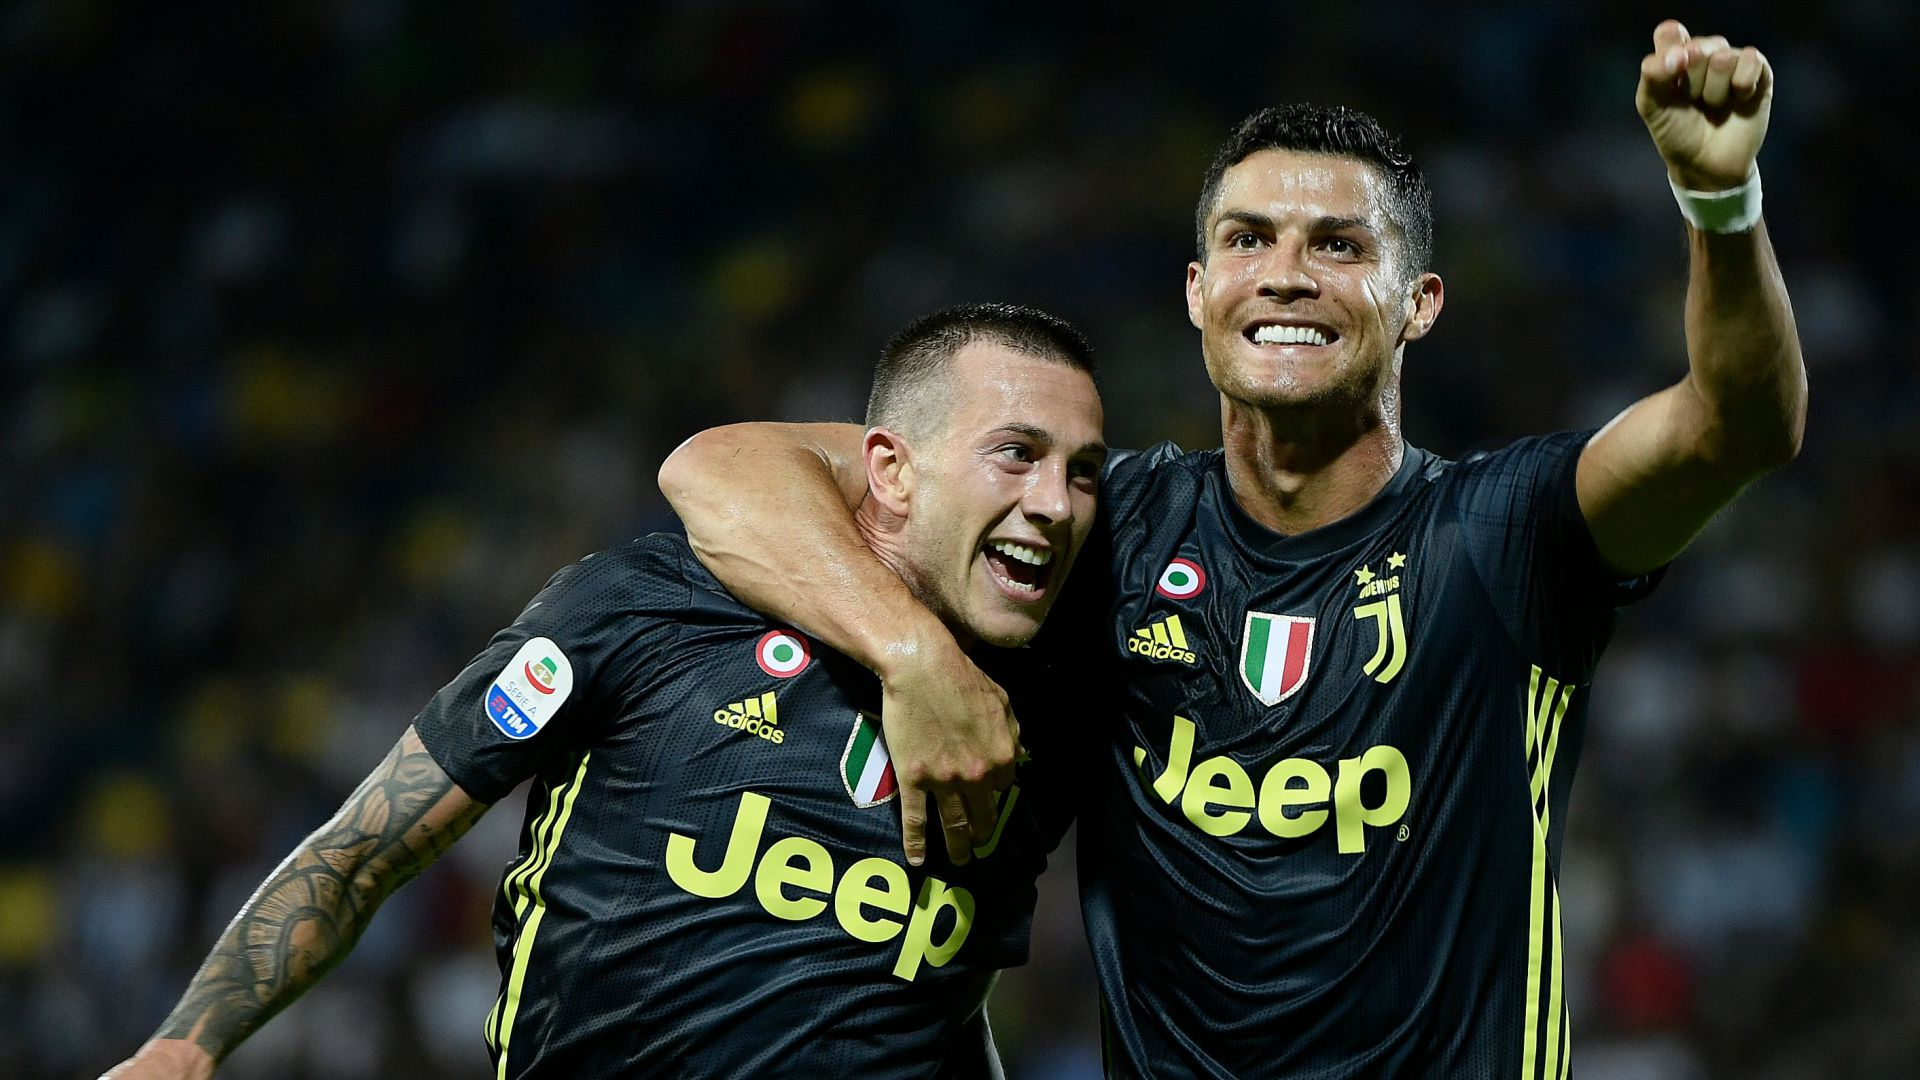 Cristiano ronaldo goal nobody expected any different juventus federico bernardeschi cristiano ronaldo frosinone juventus stopboris Choice Image